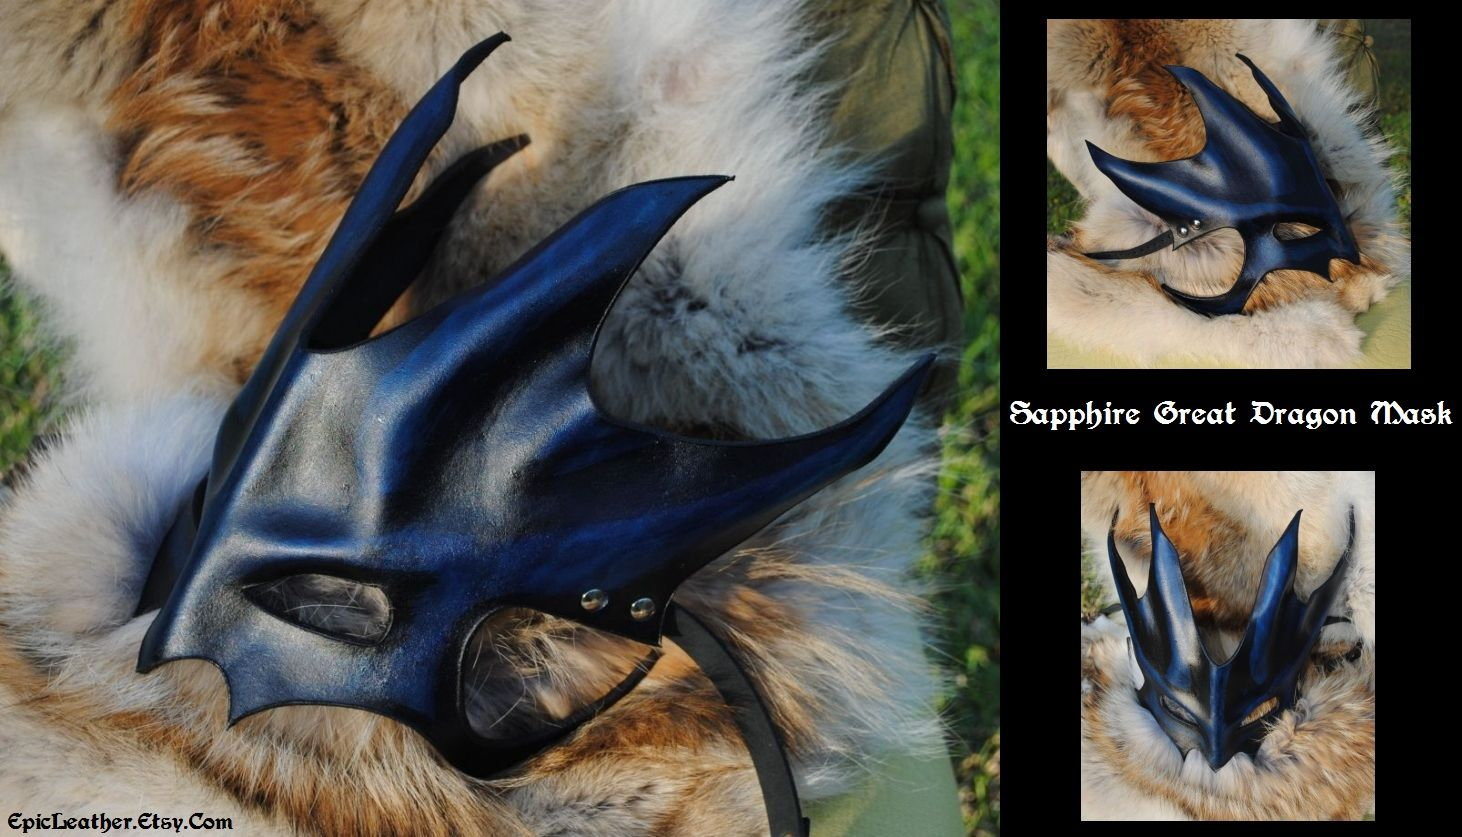 Sapphire Great Dragon Mask By Epic Leather Deviantart Com Dragon Mask Leather Mask Mask